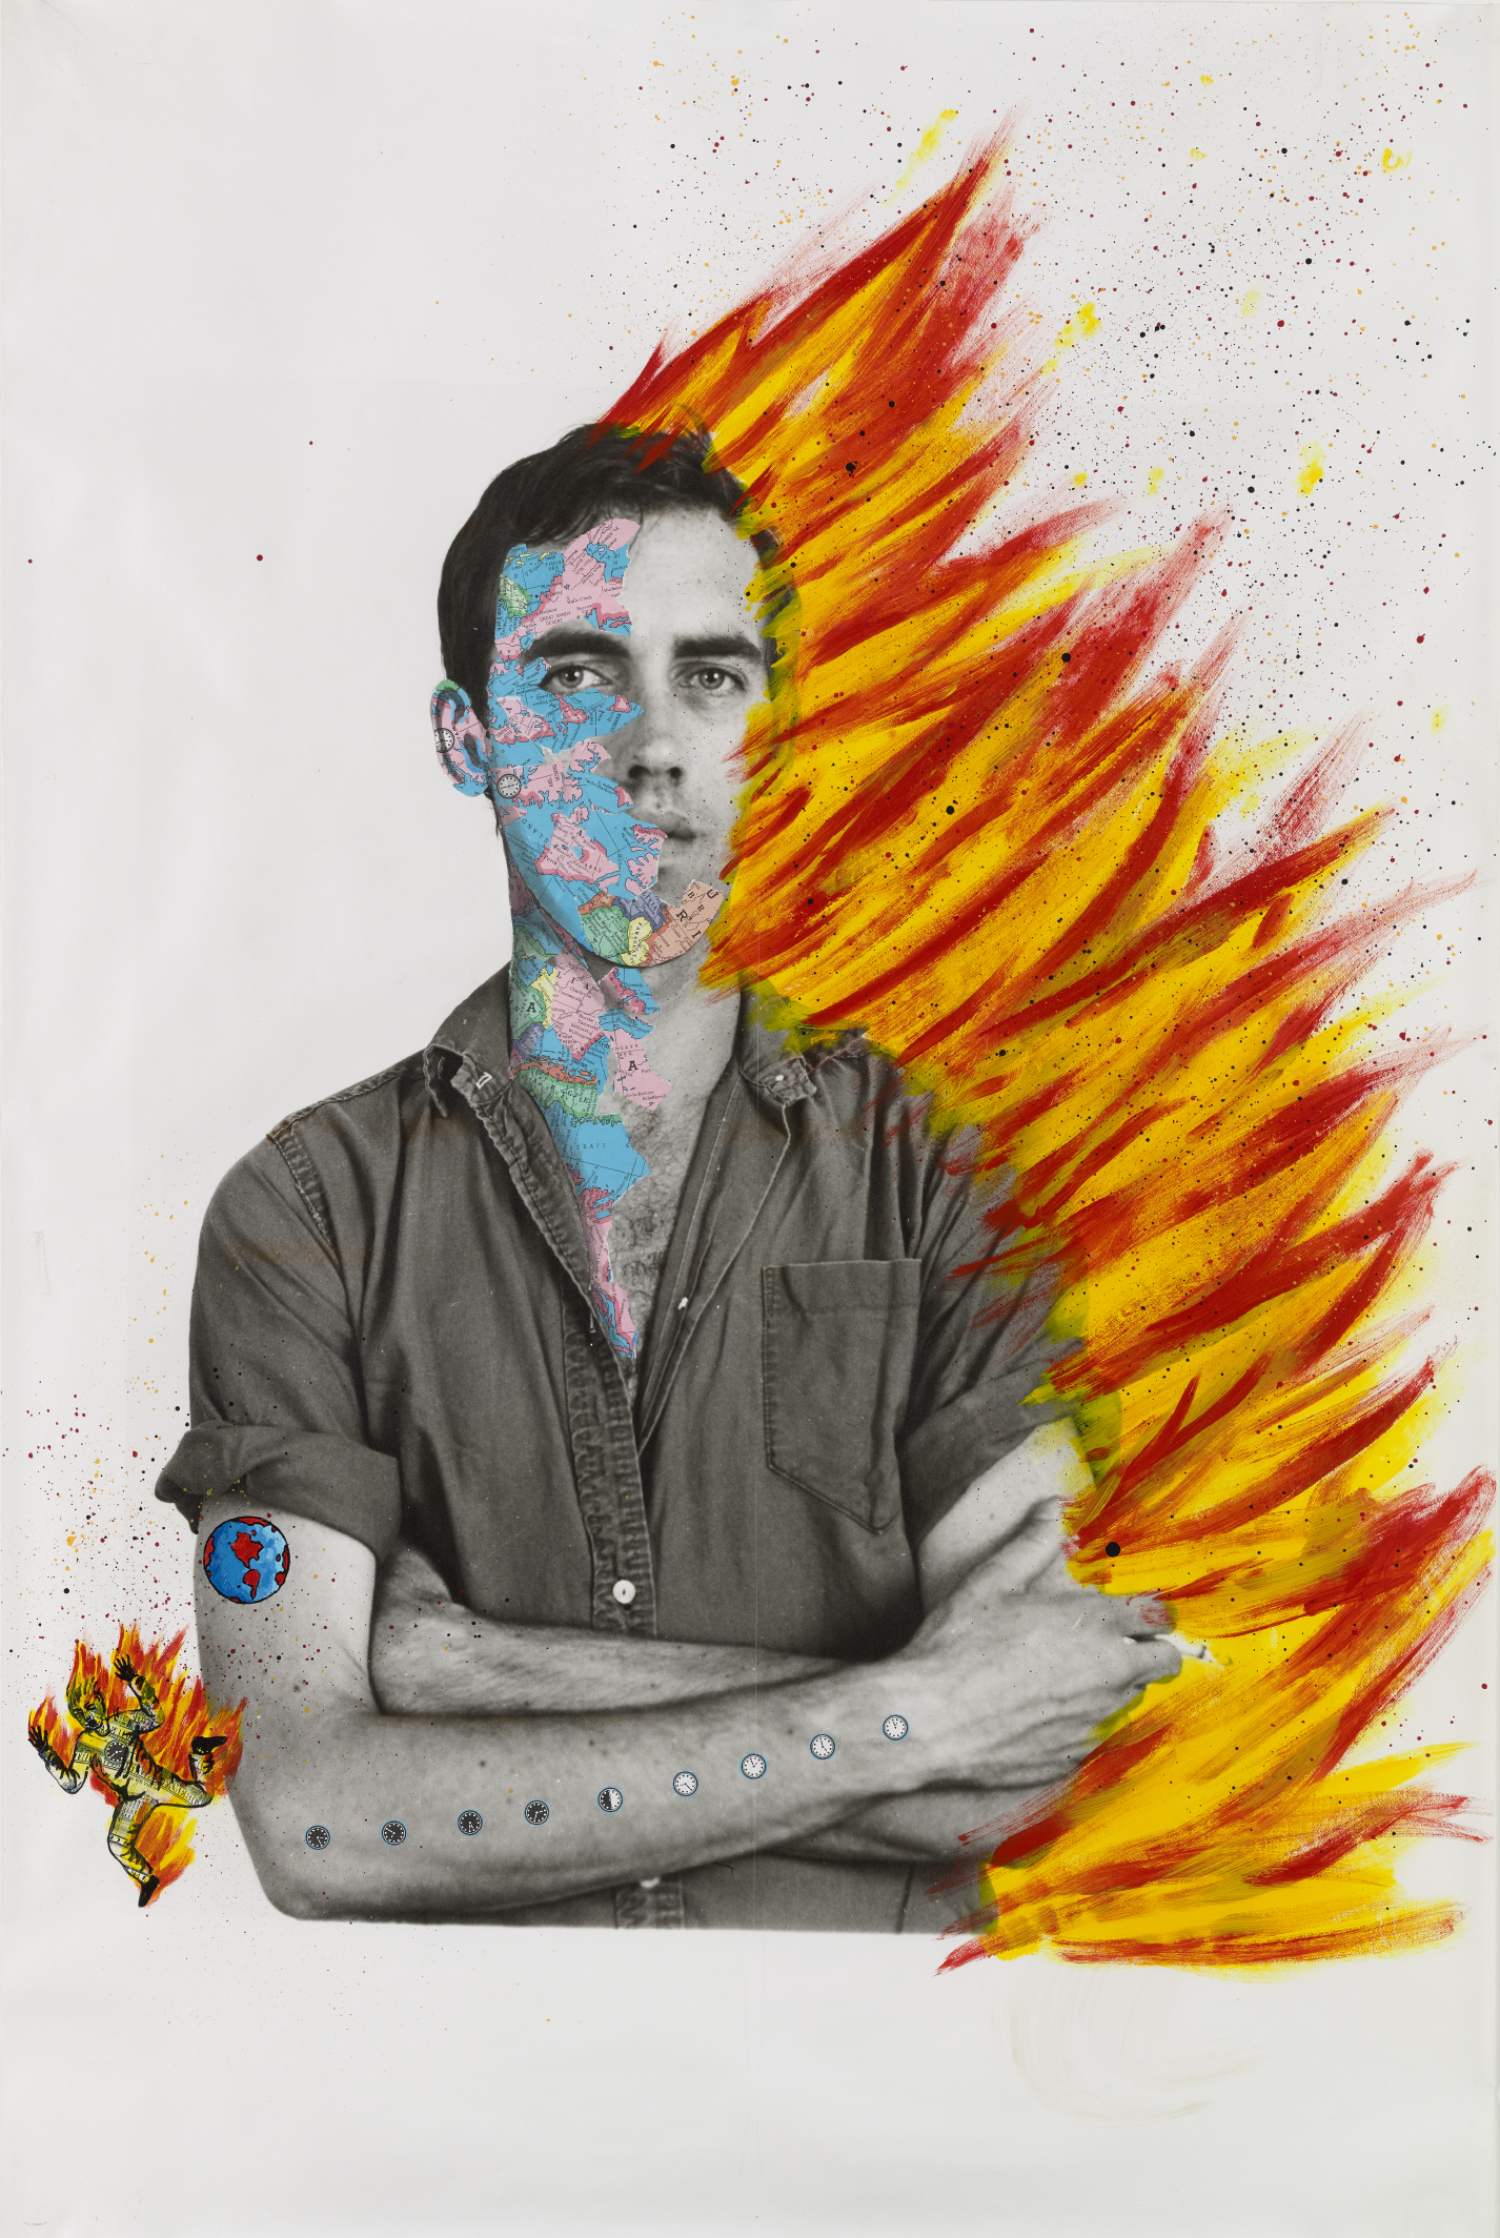 David Wojnarowicz (1954-1992) with Tom Warren, Self-Portrait of David Wojnarowicz, 1983–84